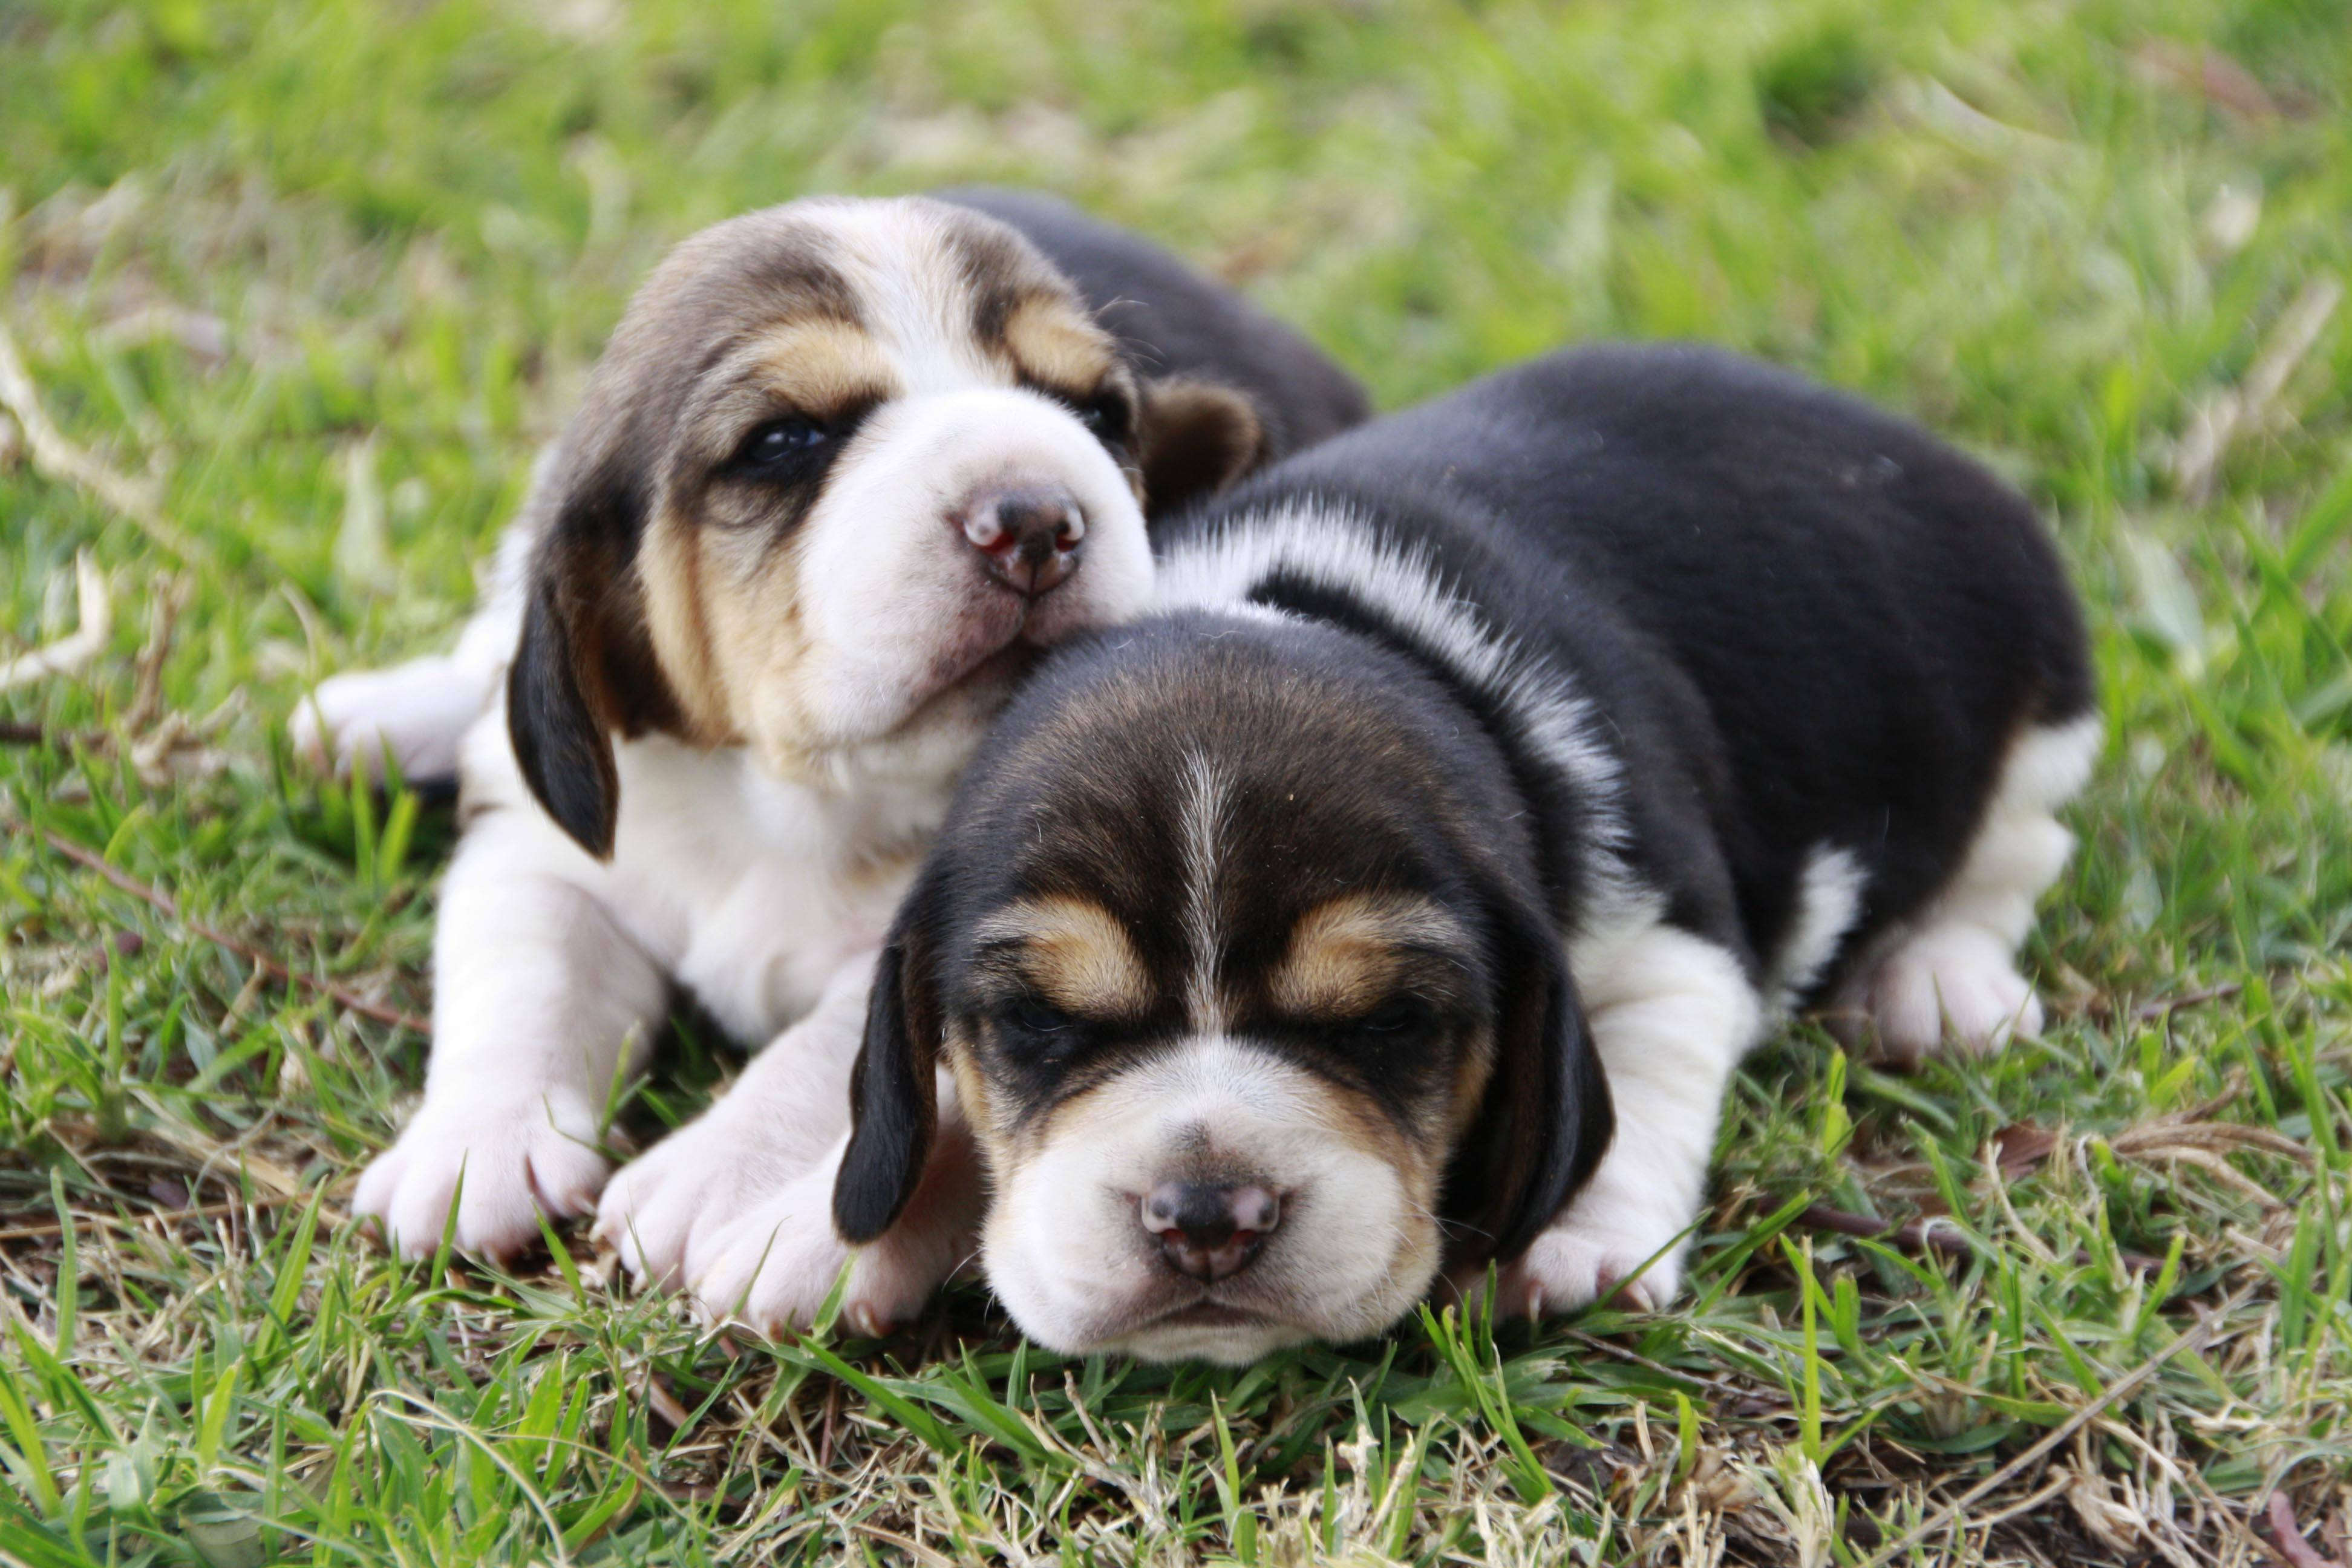 Beagle Puppies for Sale in Cape Town by Yolandi Coetzee